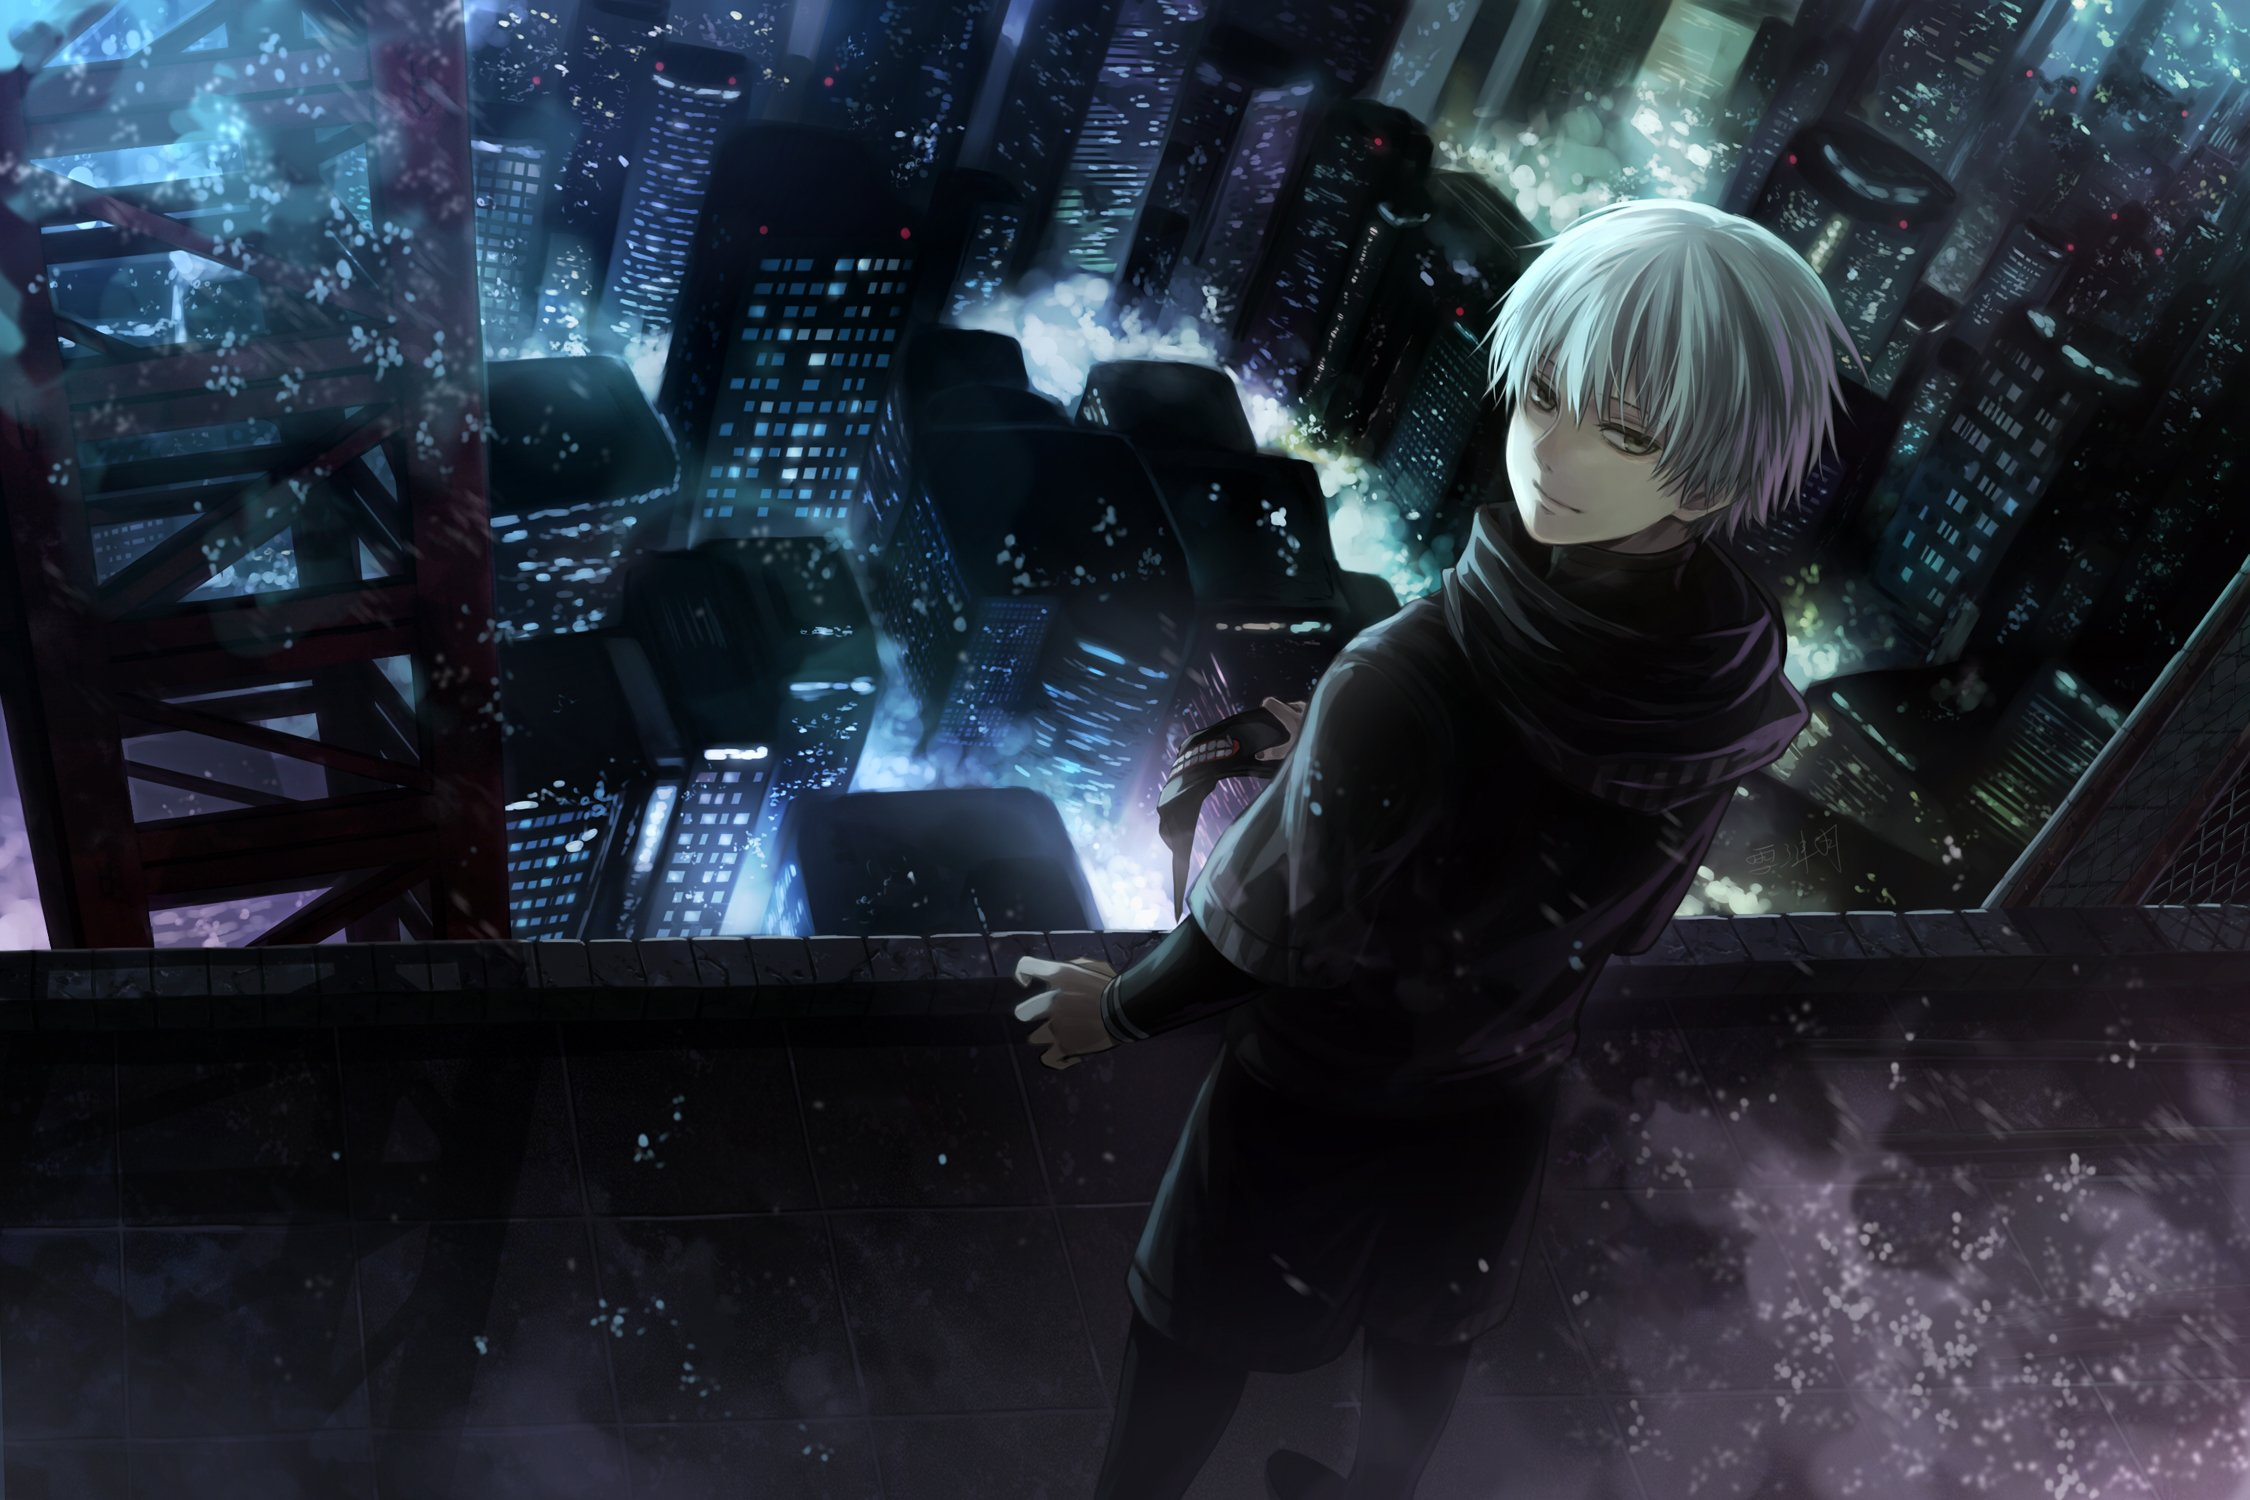 ken kaneki tokyo ghoul a· hd wallpaper background id526885